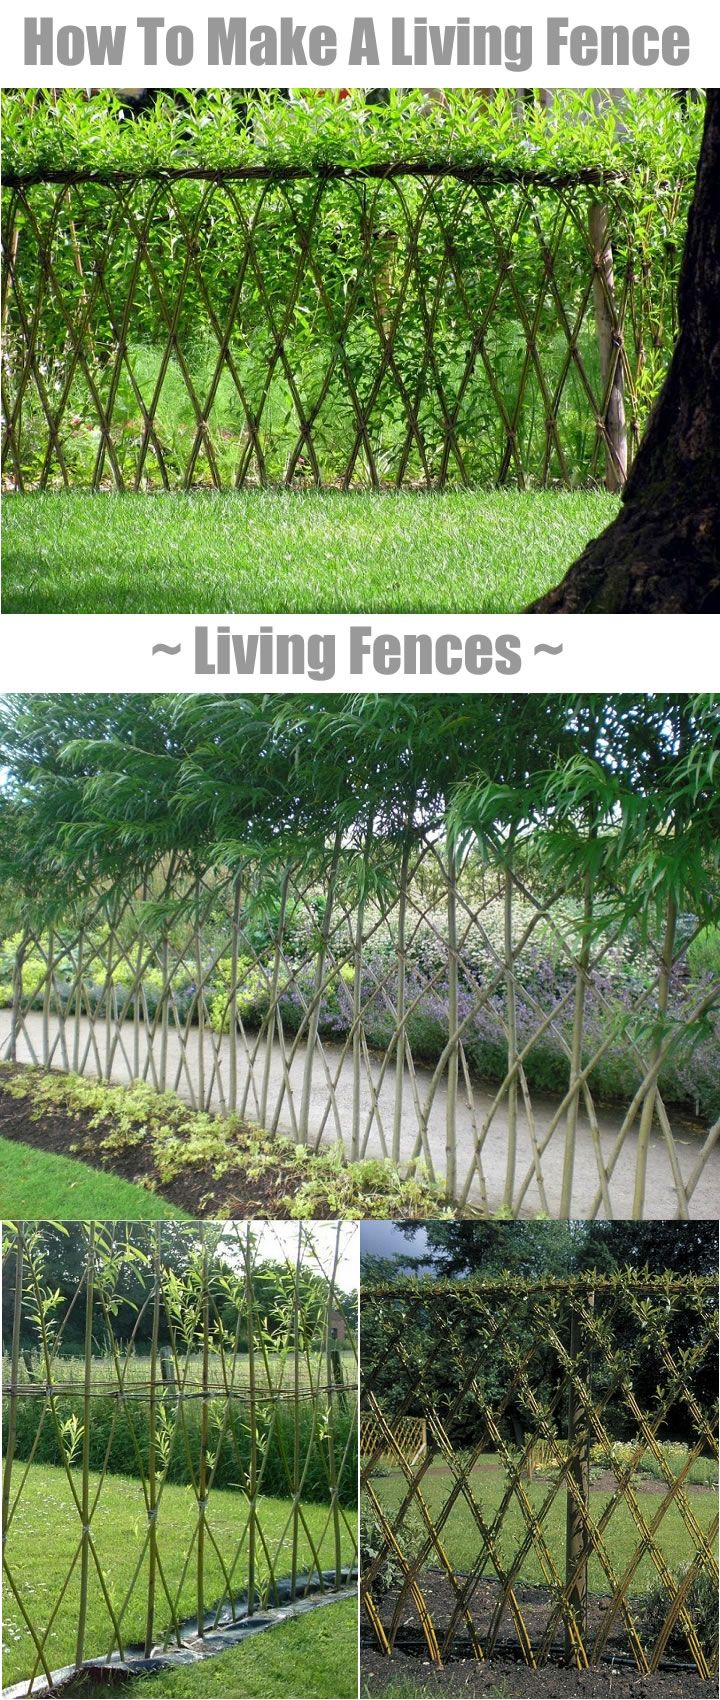 Living Fences - How To Make A Living Fence For Your Garden... | http://www.ecosnippets.com/diy/how-to-make-a-living-fence/